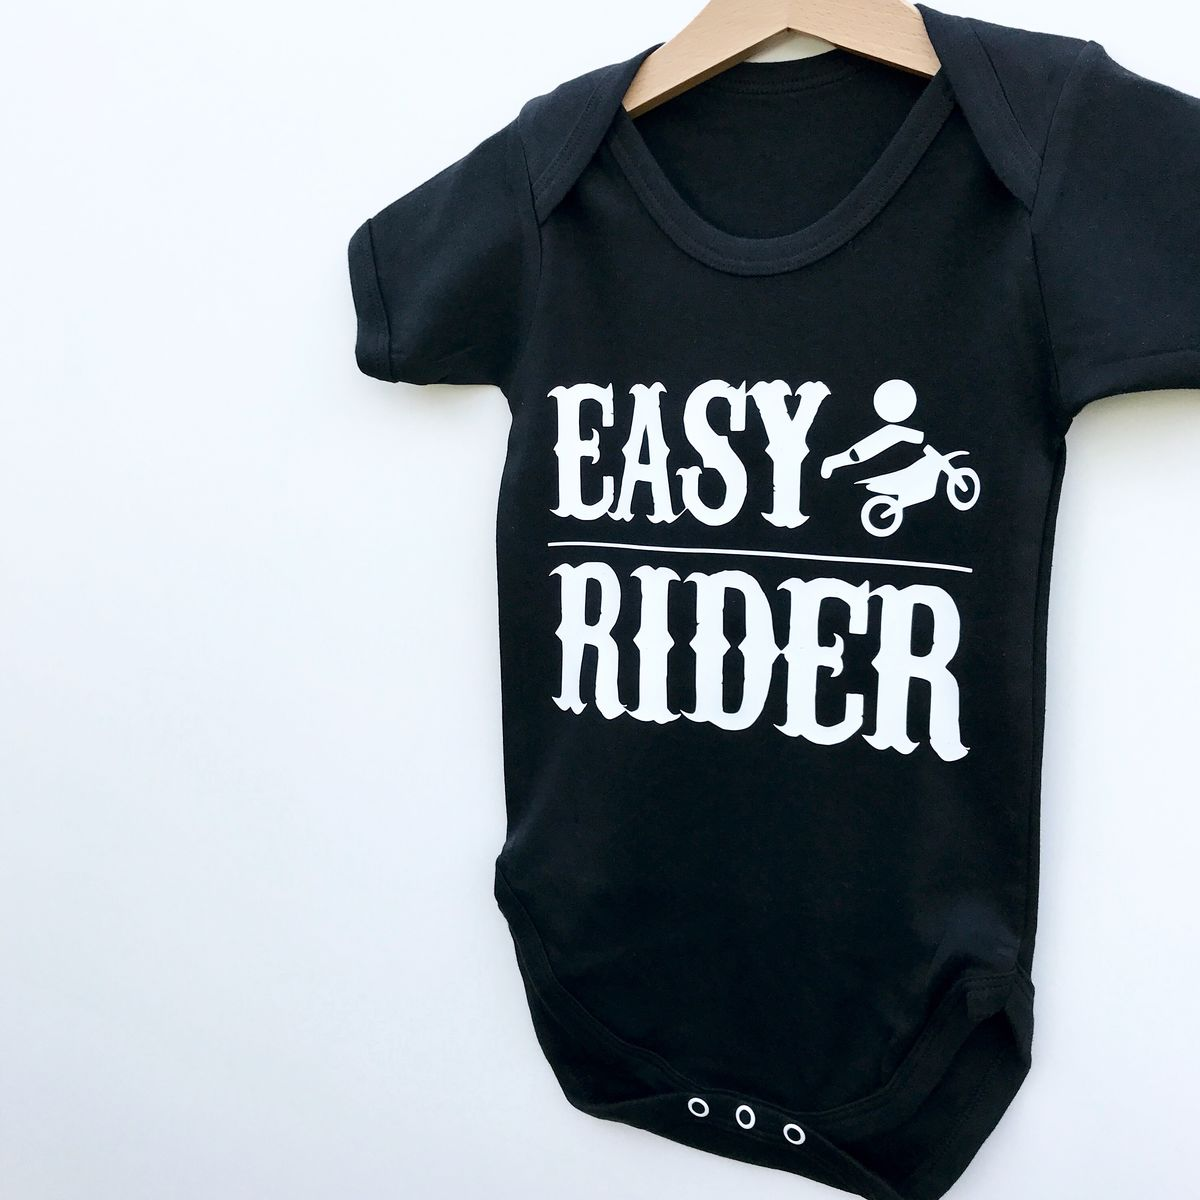 Easy Rider Bodysuit - product images  of